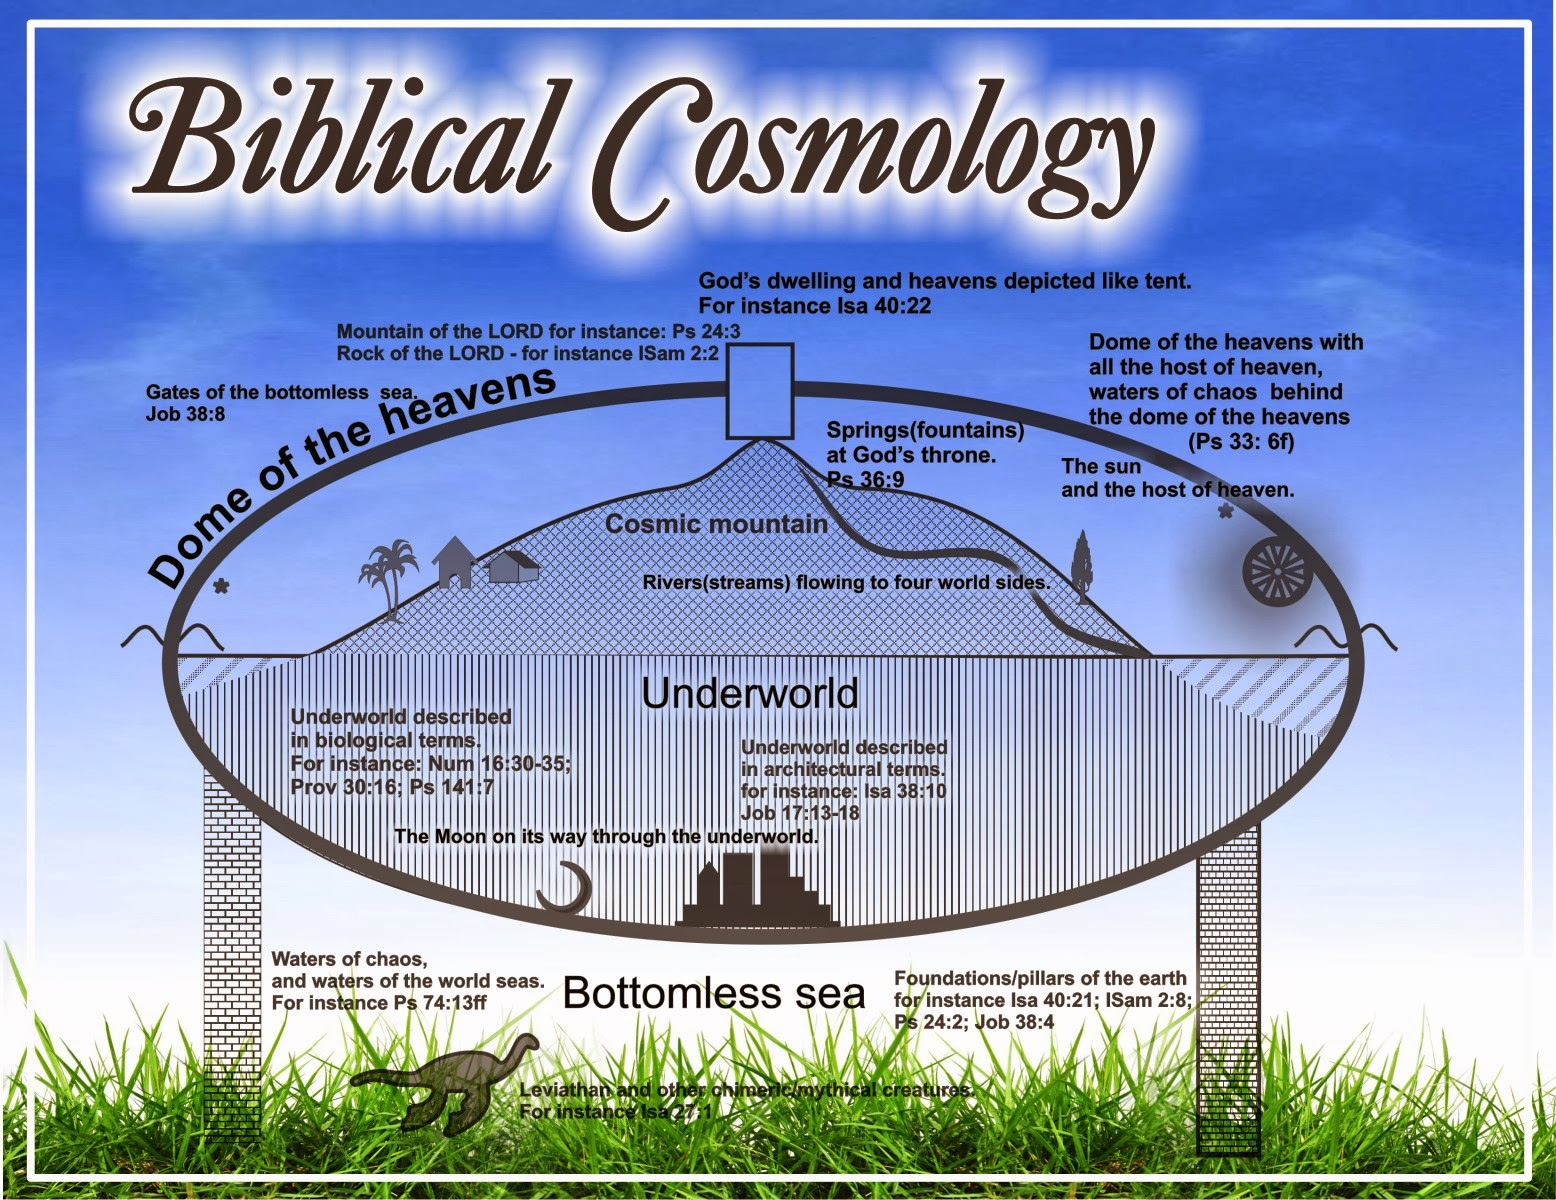 the cosmological stories etiology from the genesis Argument for the existence of god based on the evidence from the universe though the kalam cosmological (a first cause argument) is often presented, others have been.